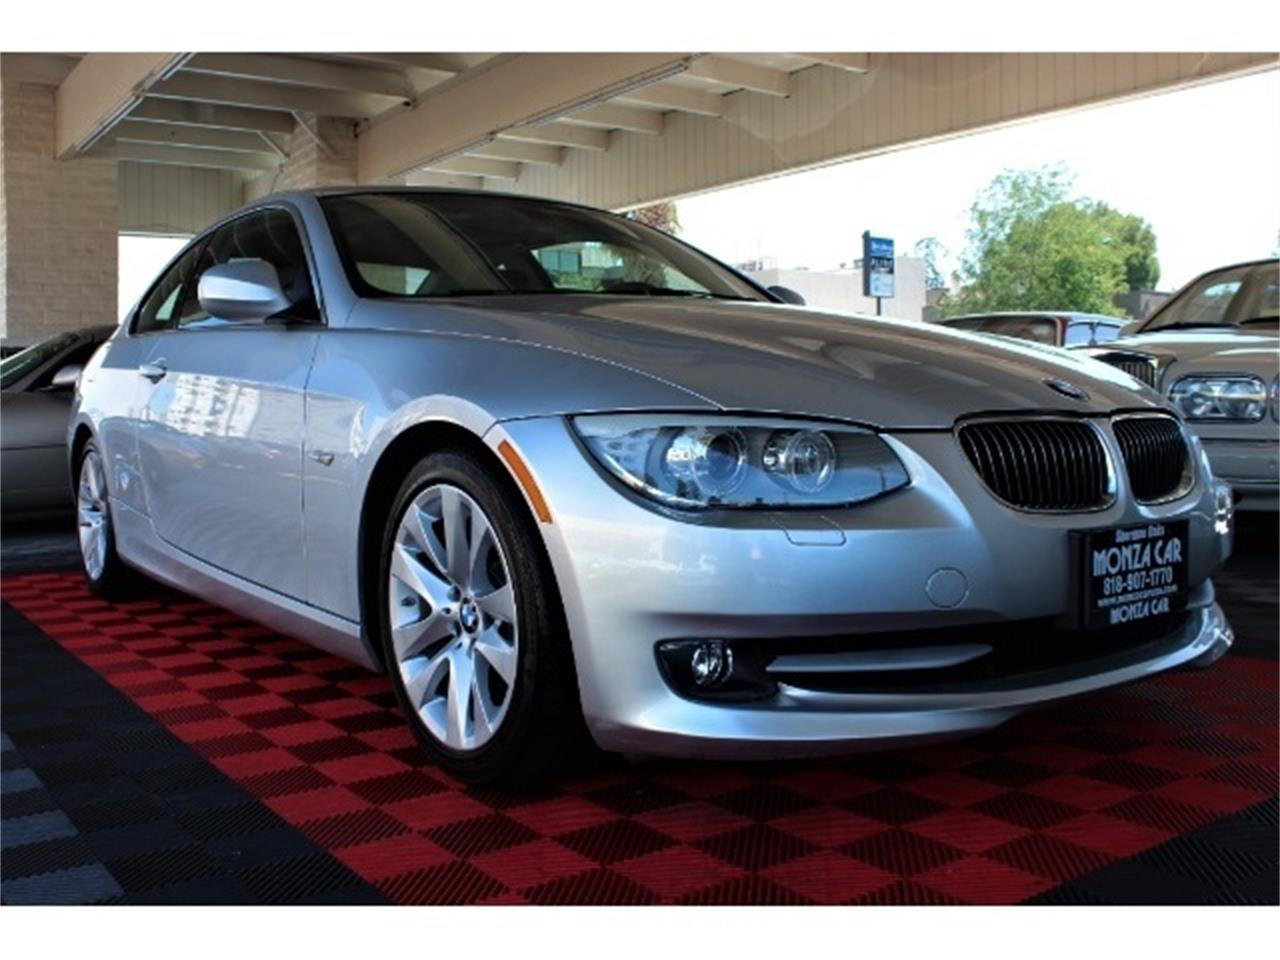 2012 Bmw 328i For Sale >> For Sale 2012 Bmw 328i In Sherman Oaks California